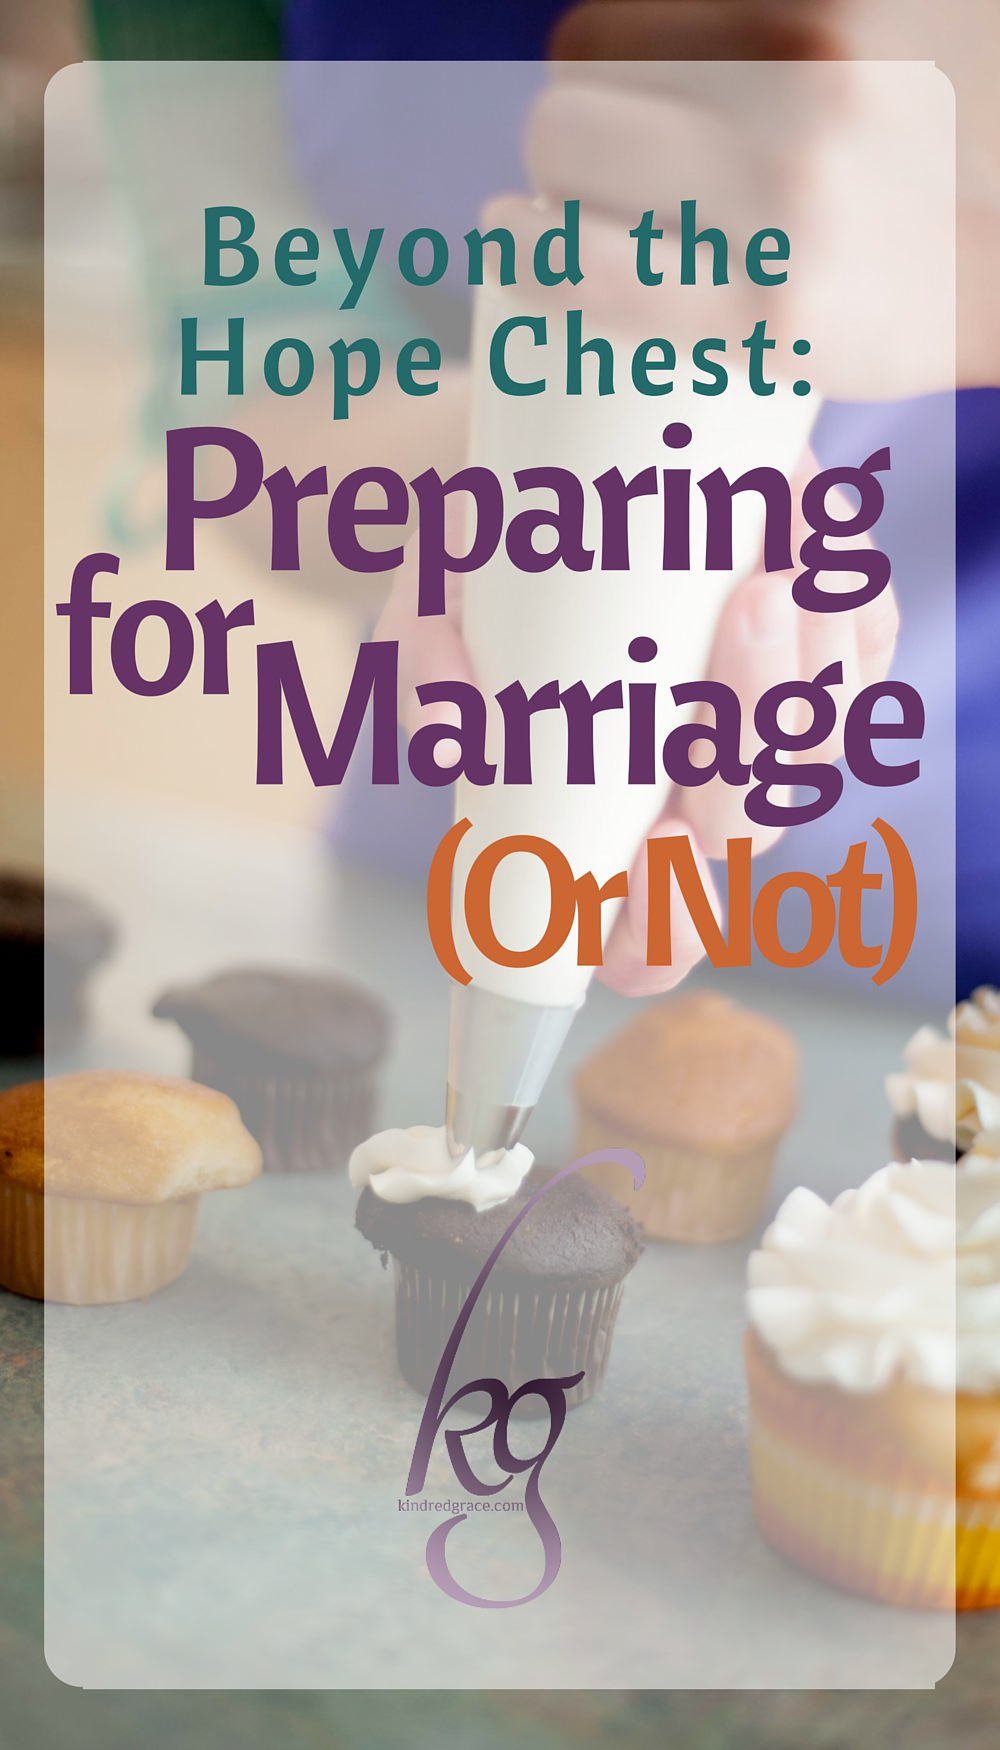 There are more useful ways to prepare for marriage than collecting kitchen towels, quilts, or even homemaking skills. via @KindredGrace